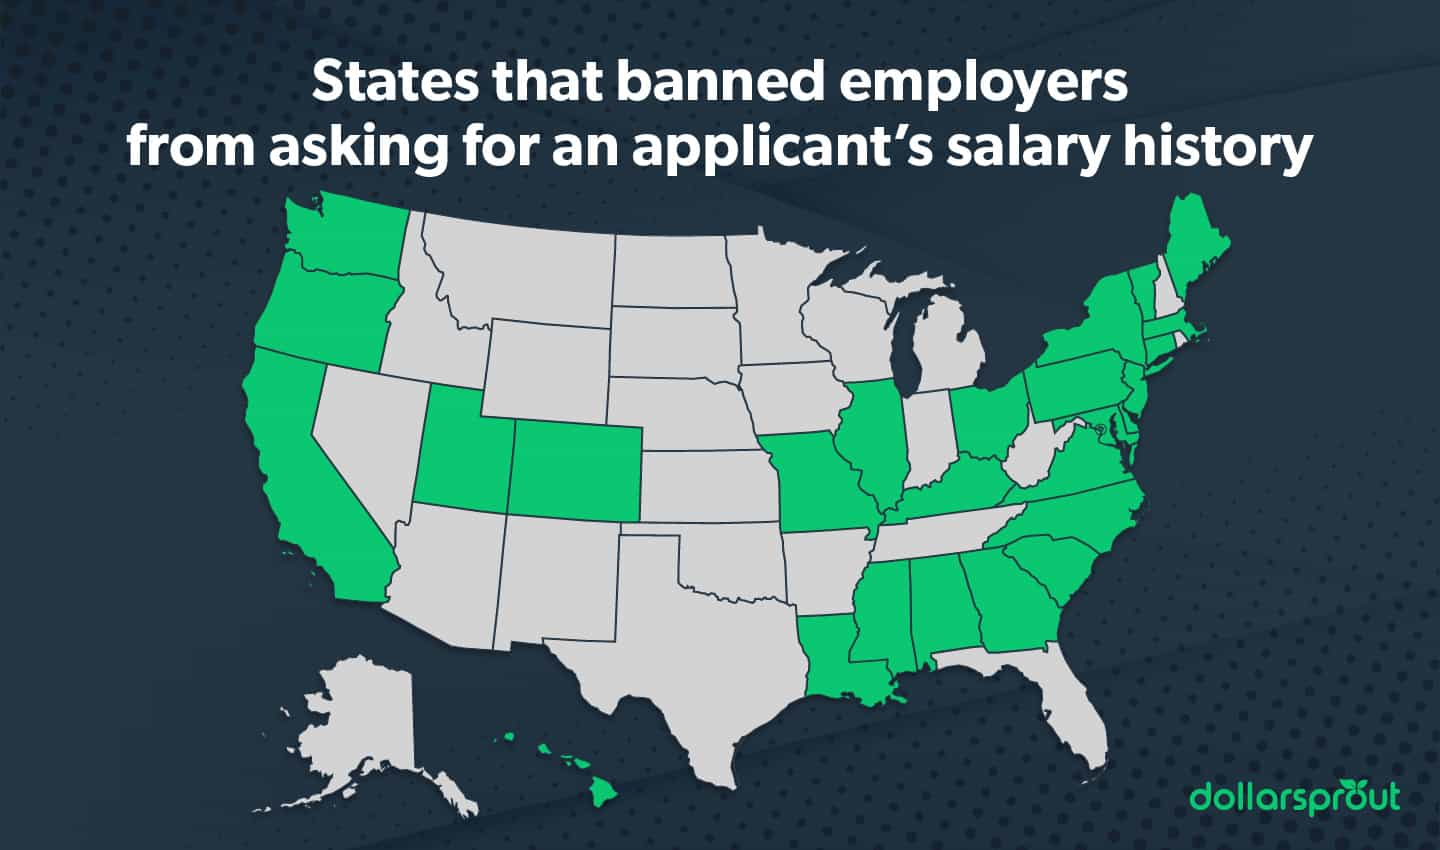 States that banned employers from asking for salary history